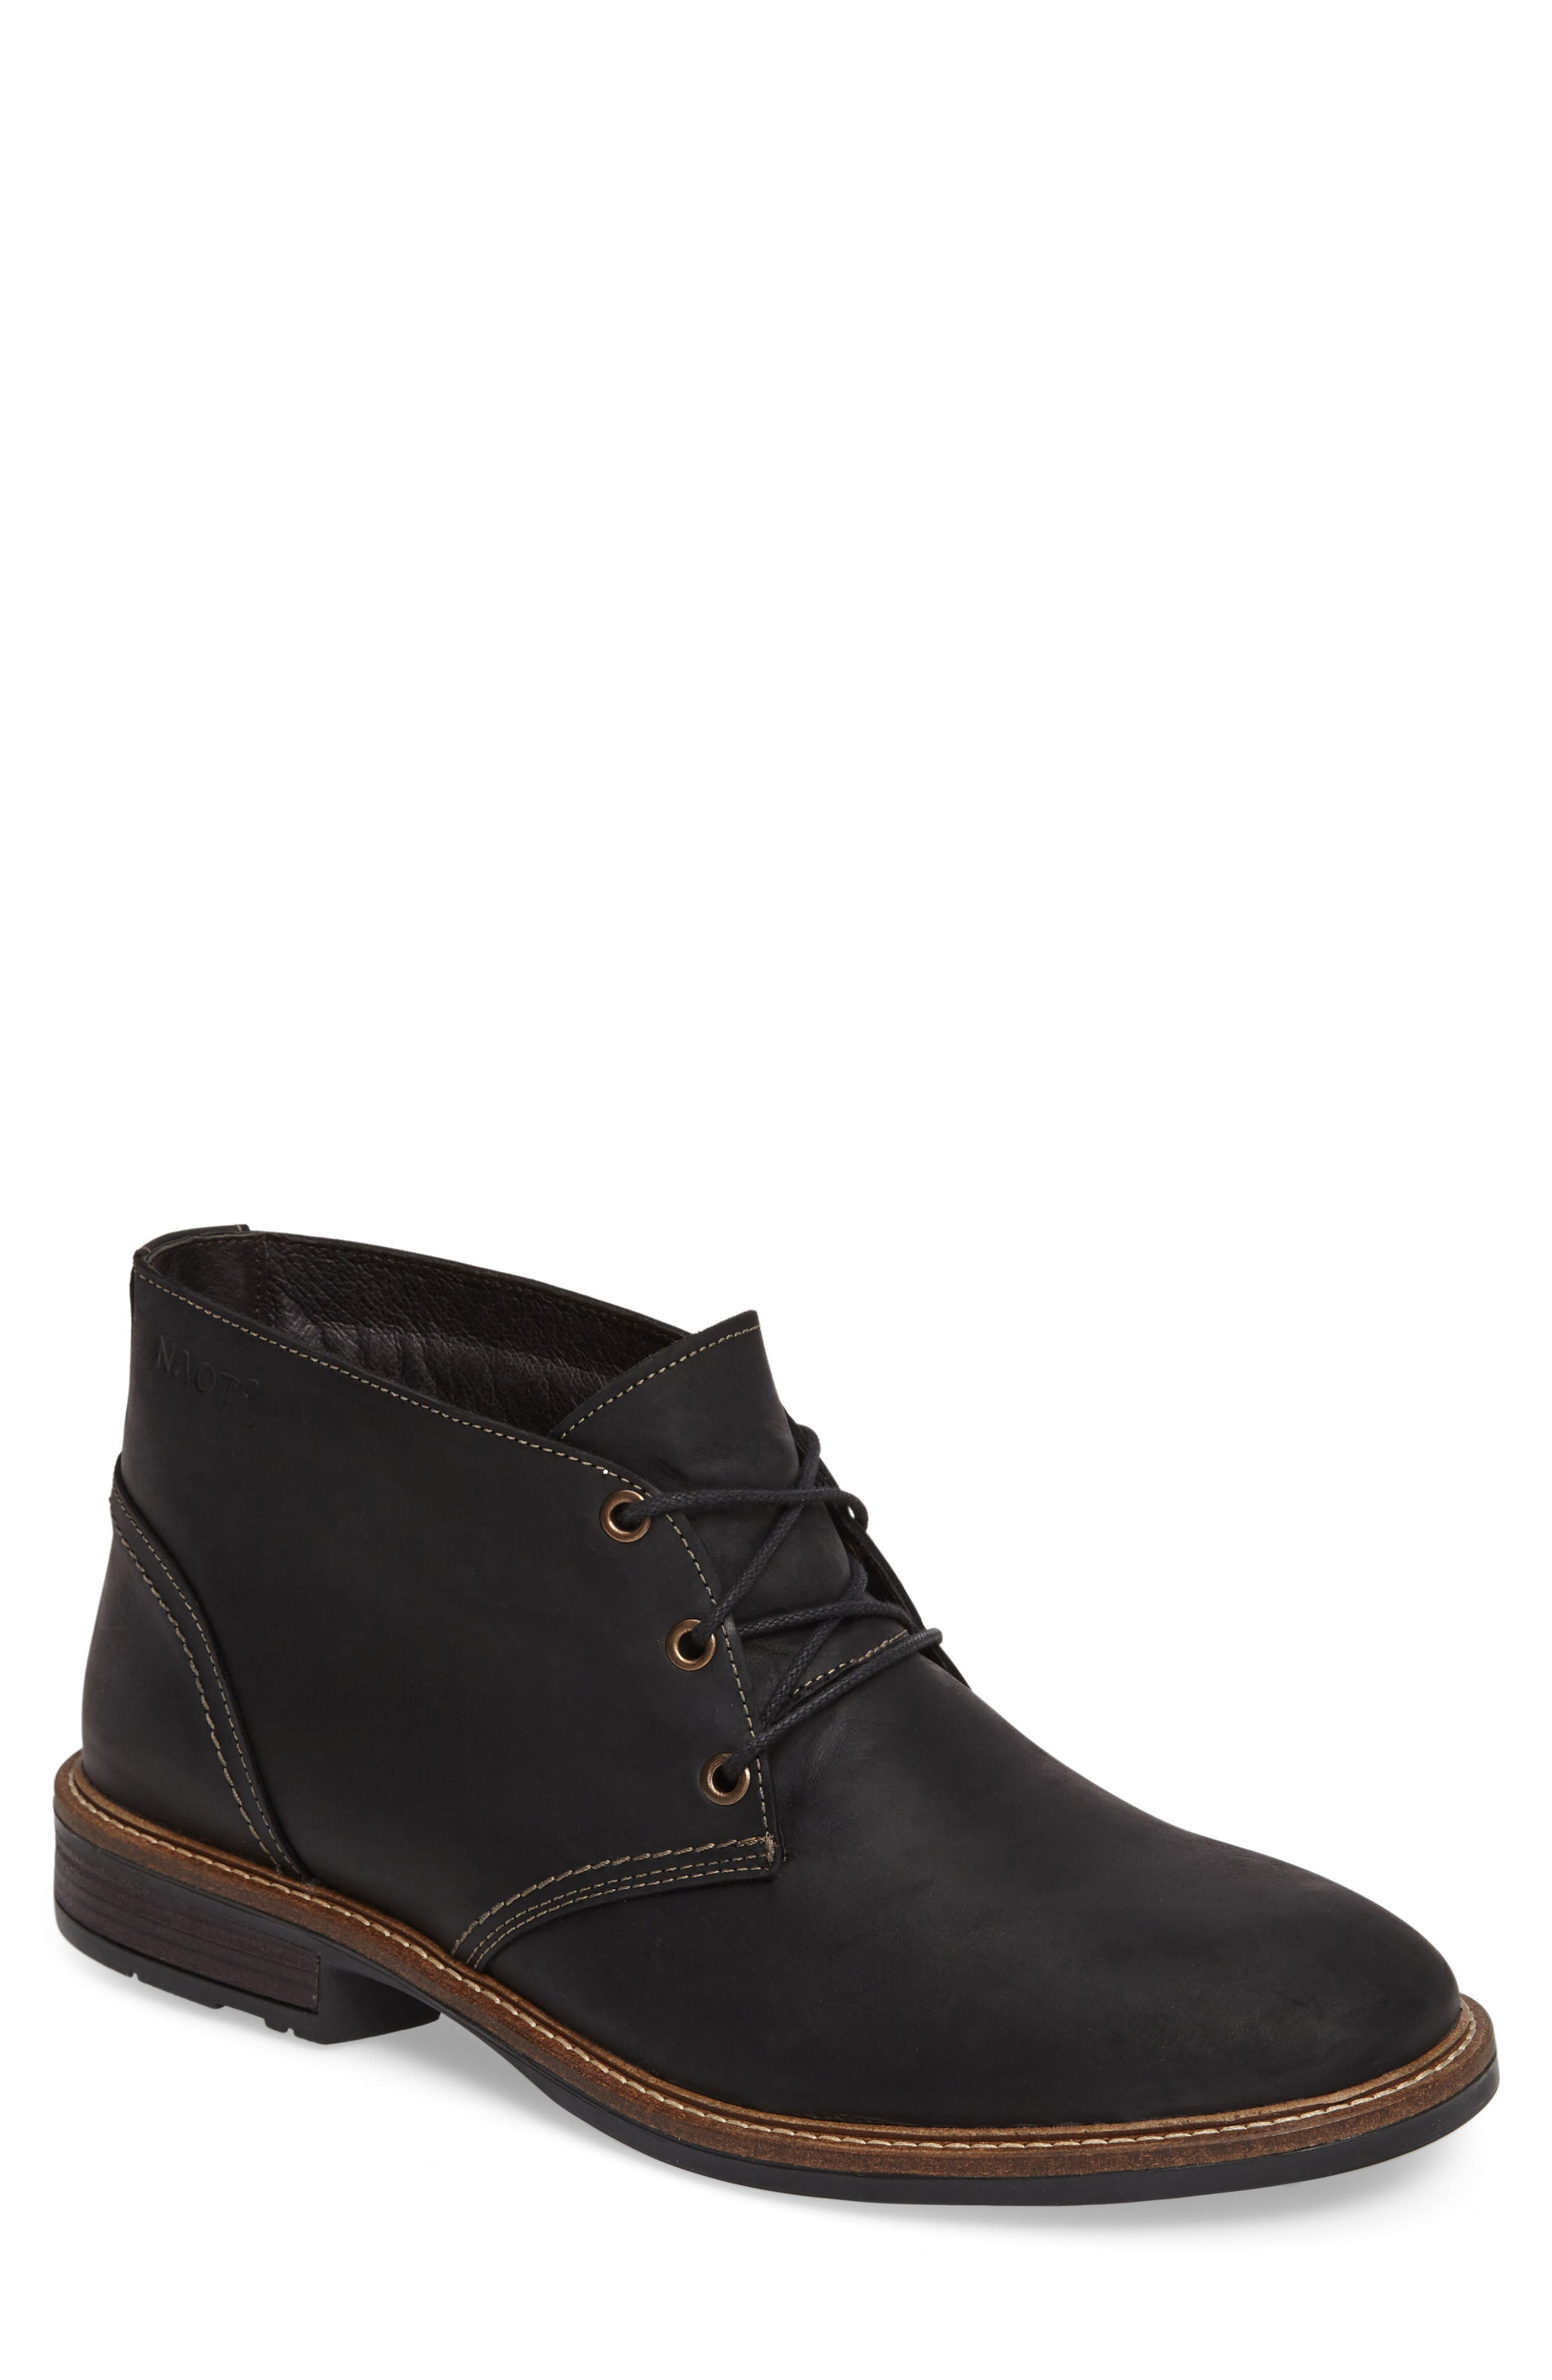 Pilot Chukka Boot,                             Main thumbnail 1, color,                             COAL NUBUCK LEATHER